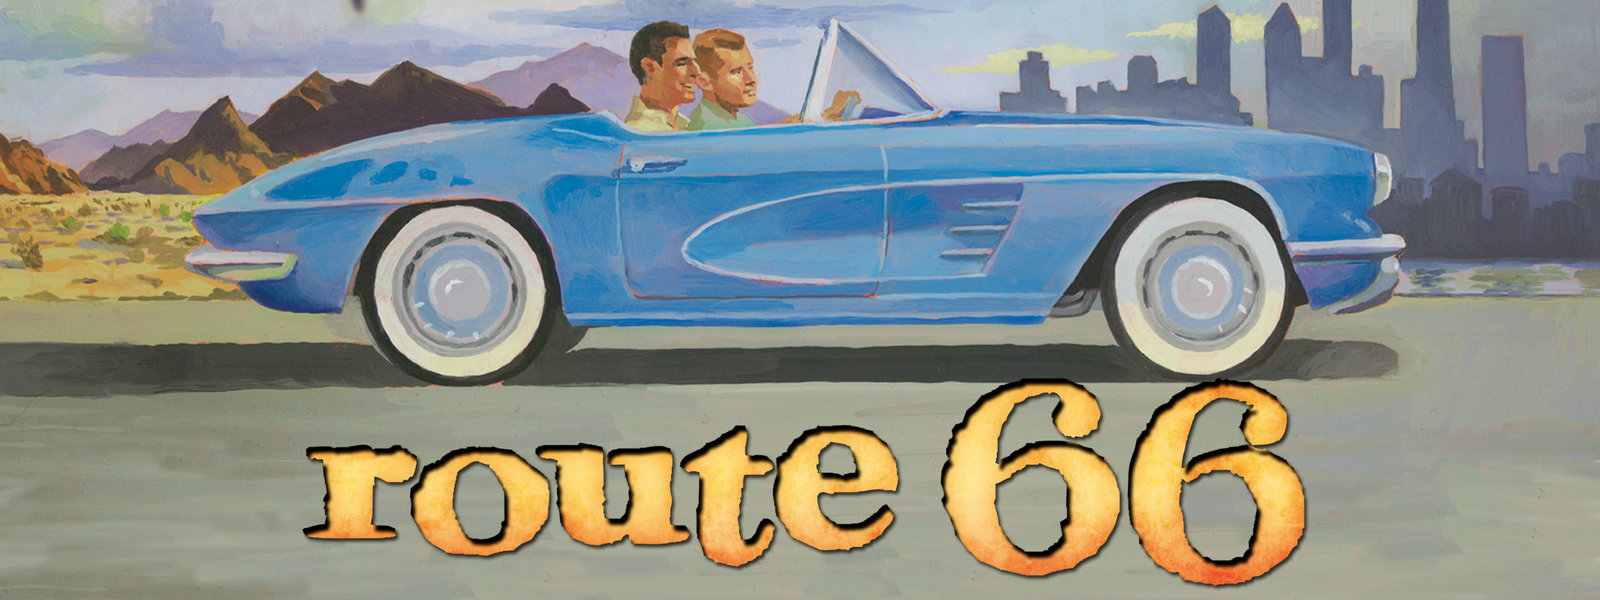 Route TV Series - Route 66 tv show car